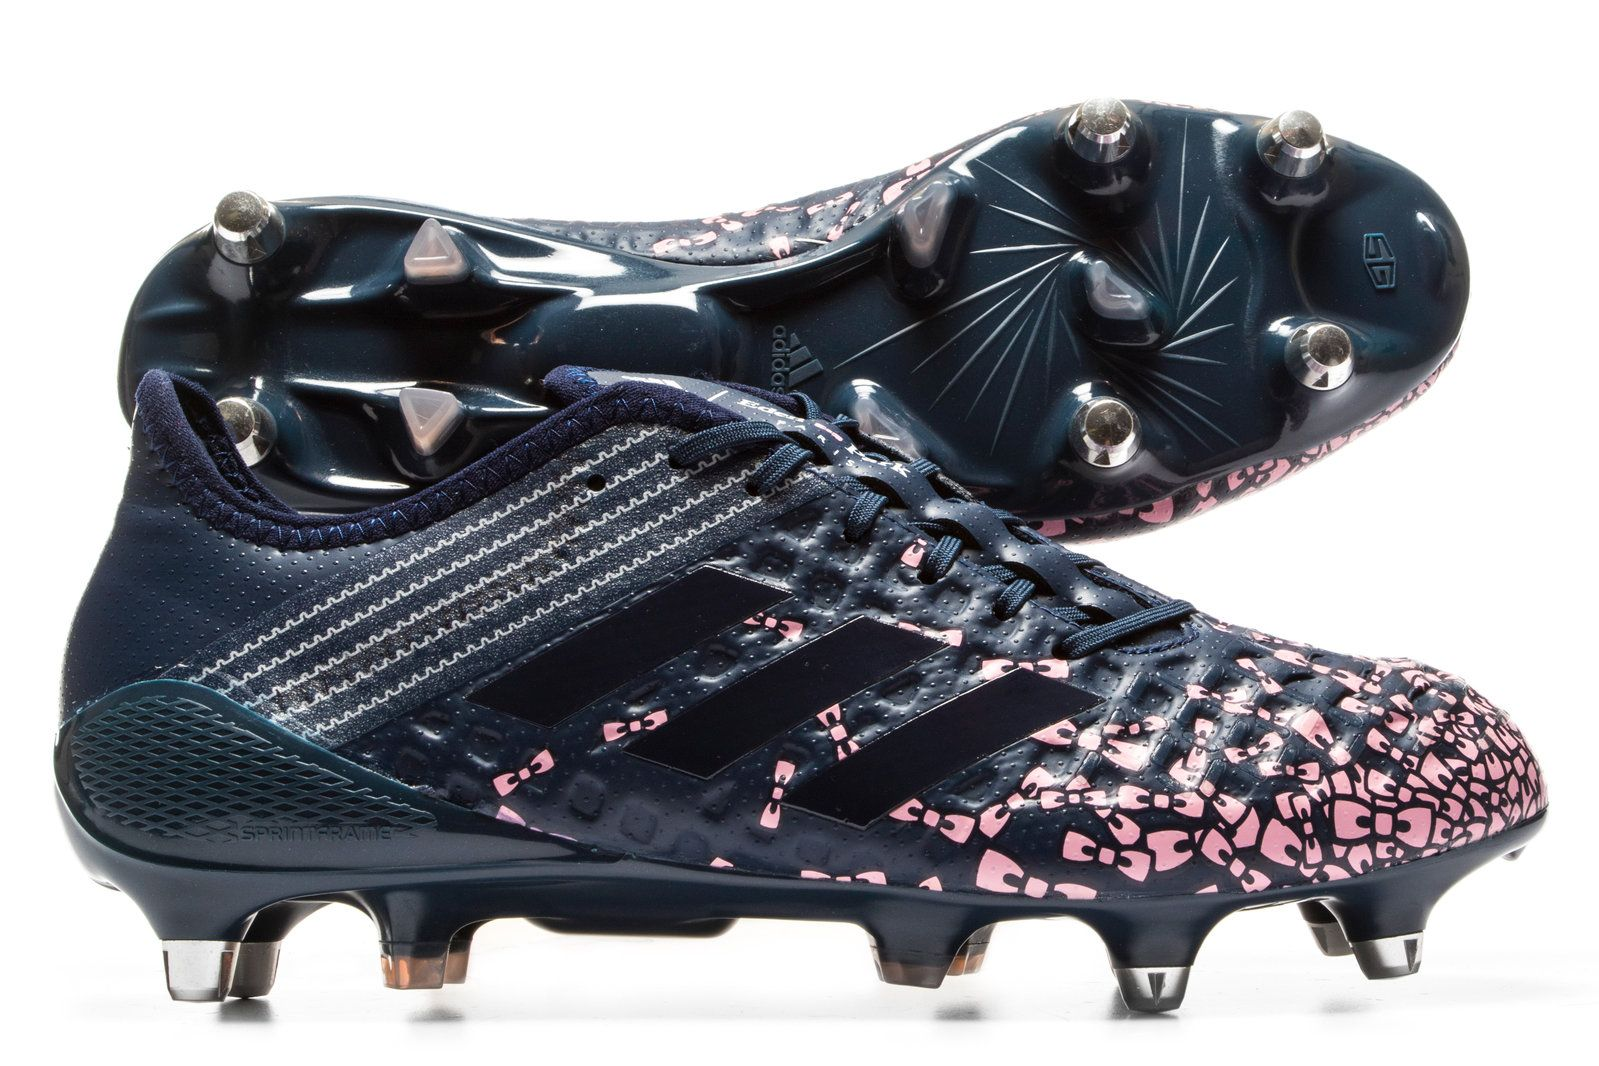 57aec193e19 Predator Malice Control Eden Park SG Rugby Boots - Uk Rugby Shop ...